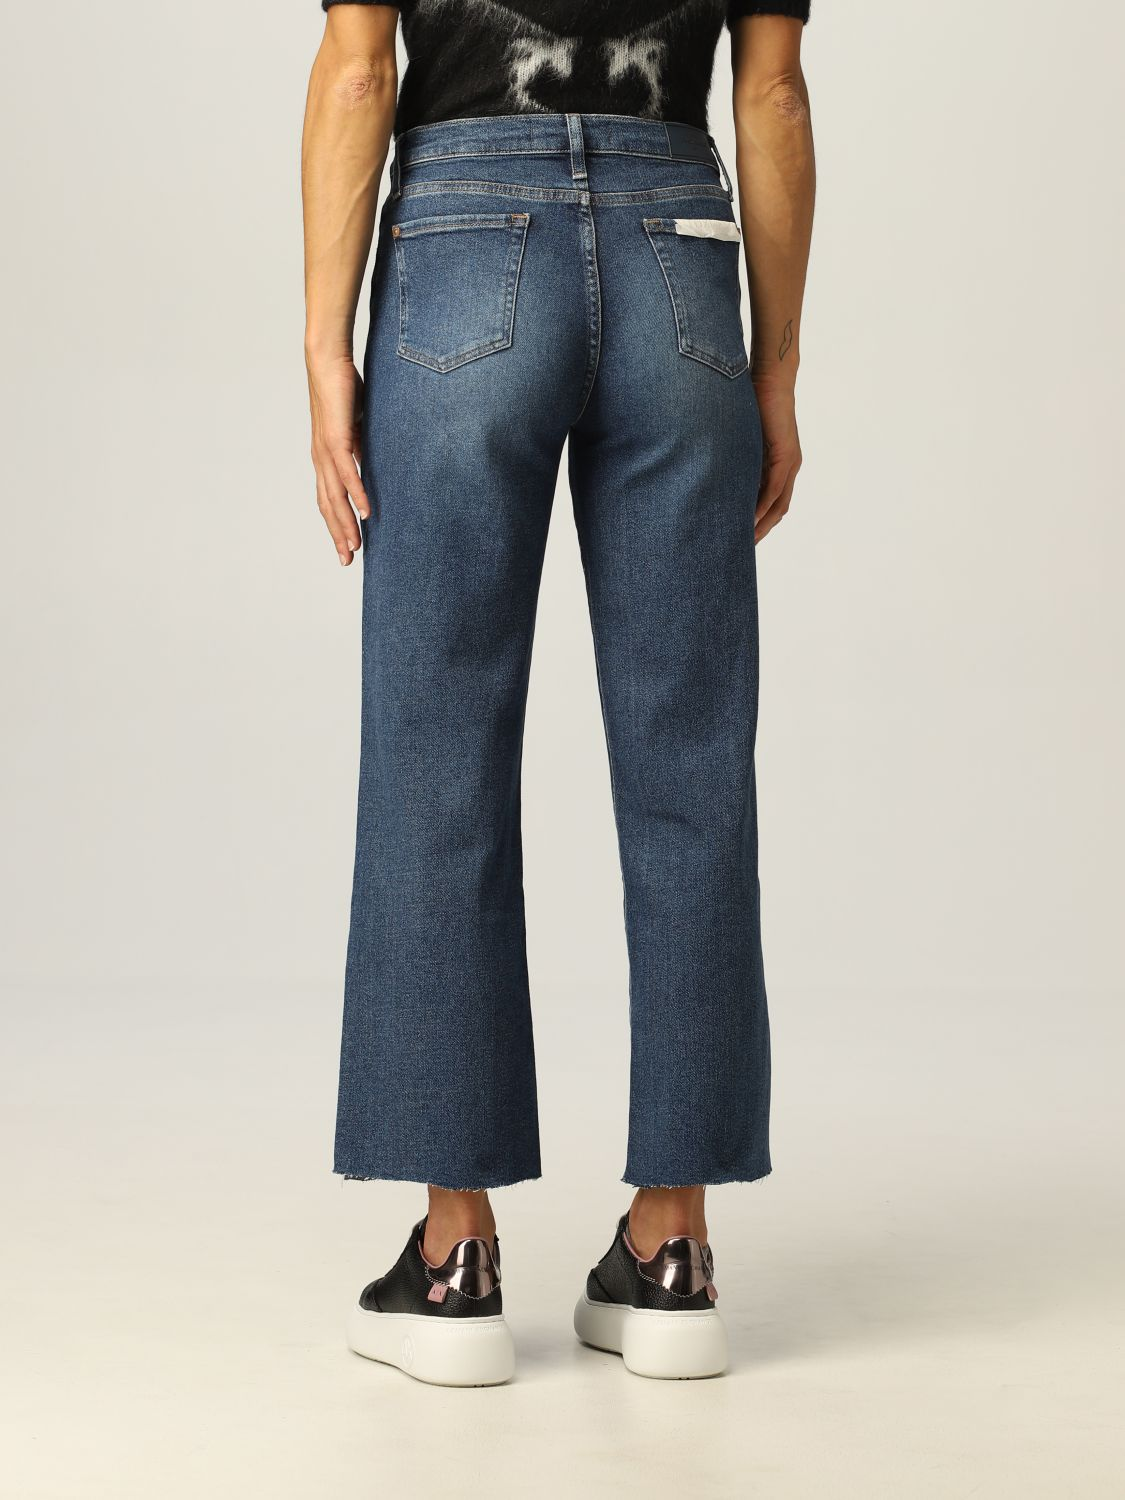 Jeans 7 For All Mankind: Jeans donna 7 For All Mankind denim 2